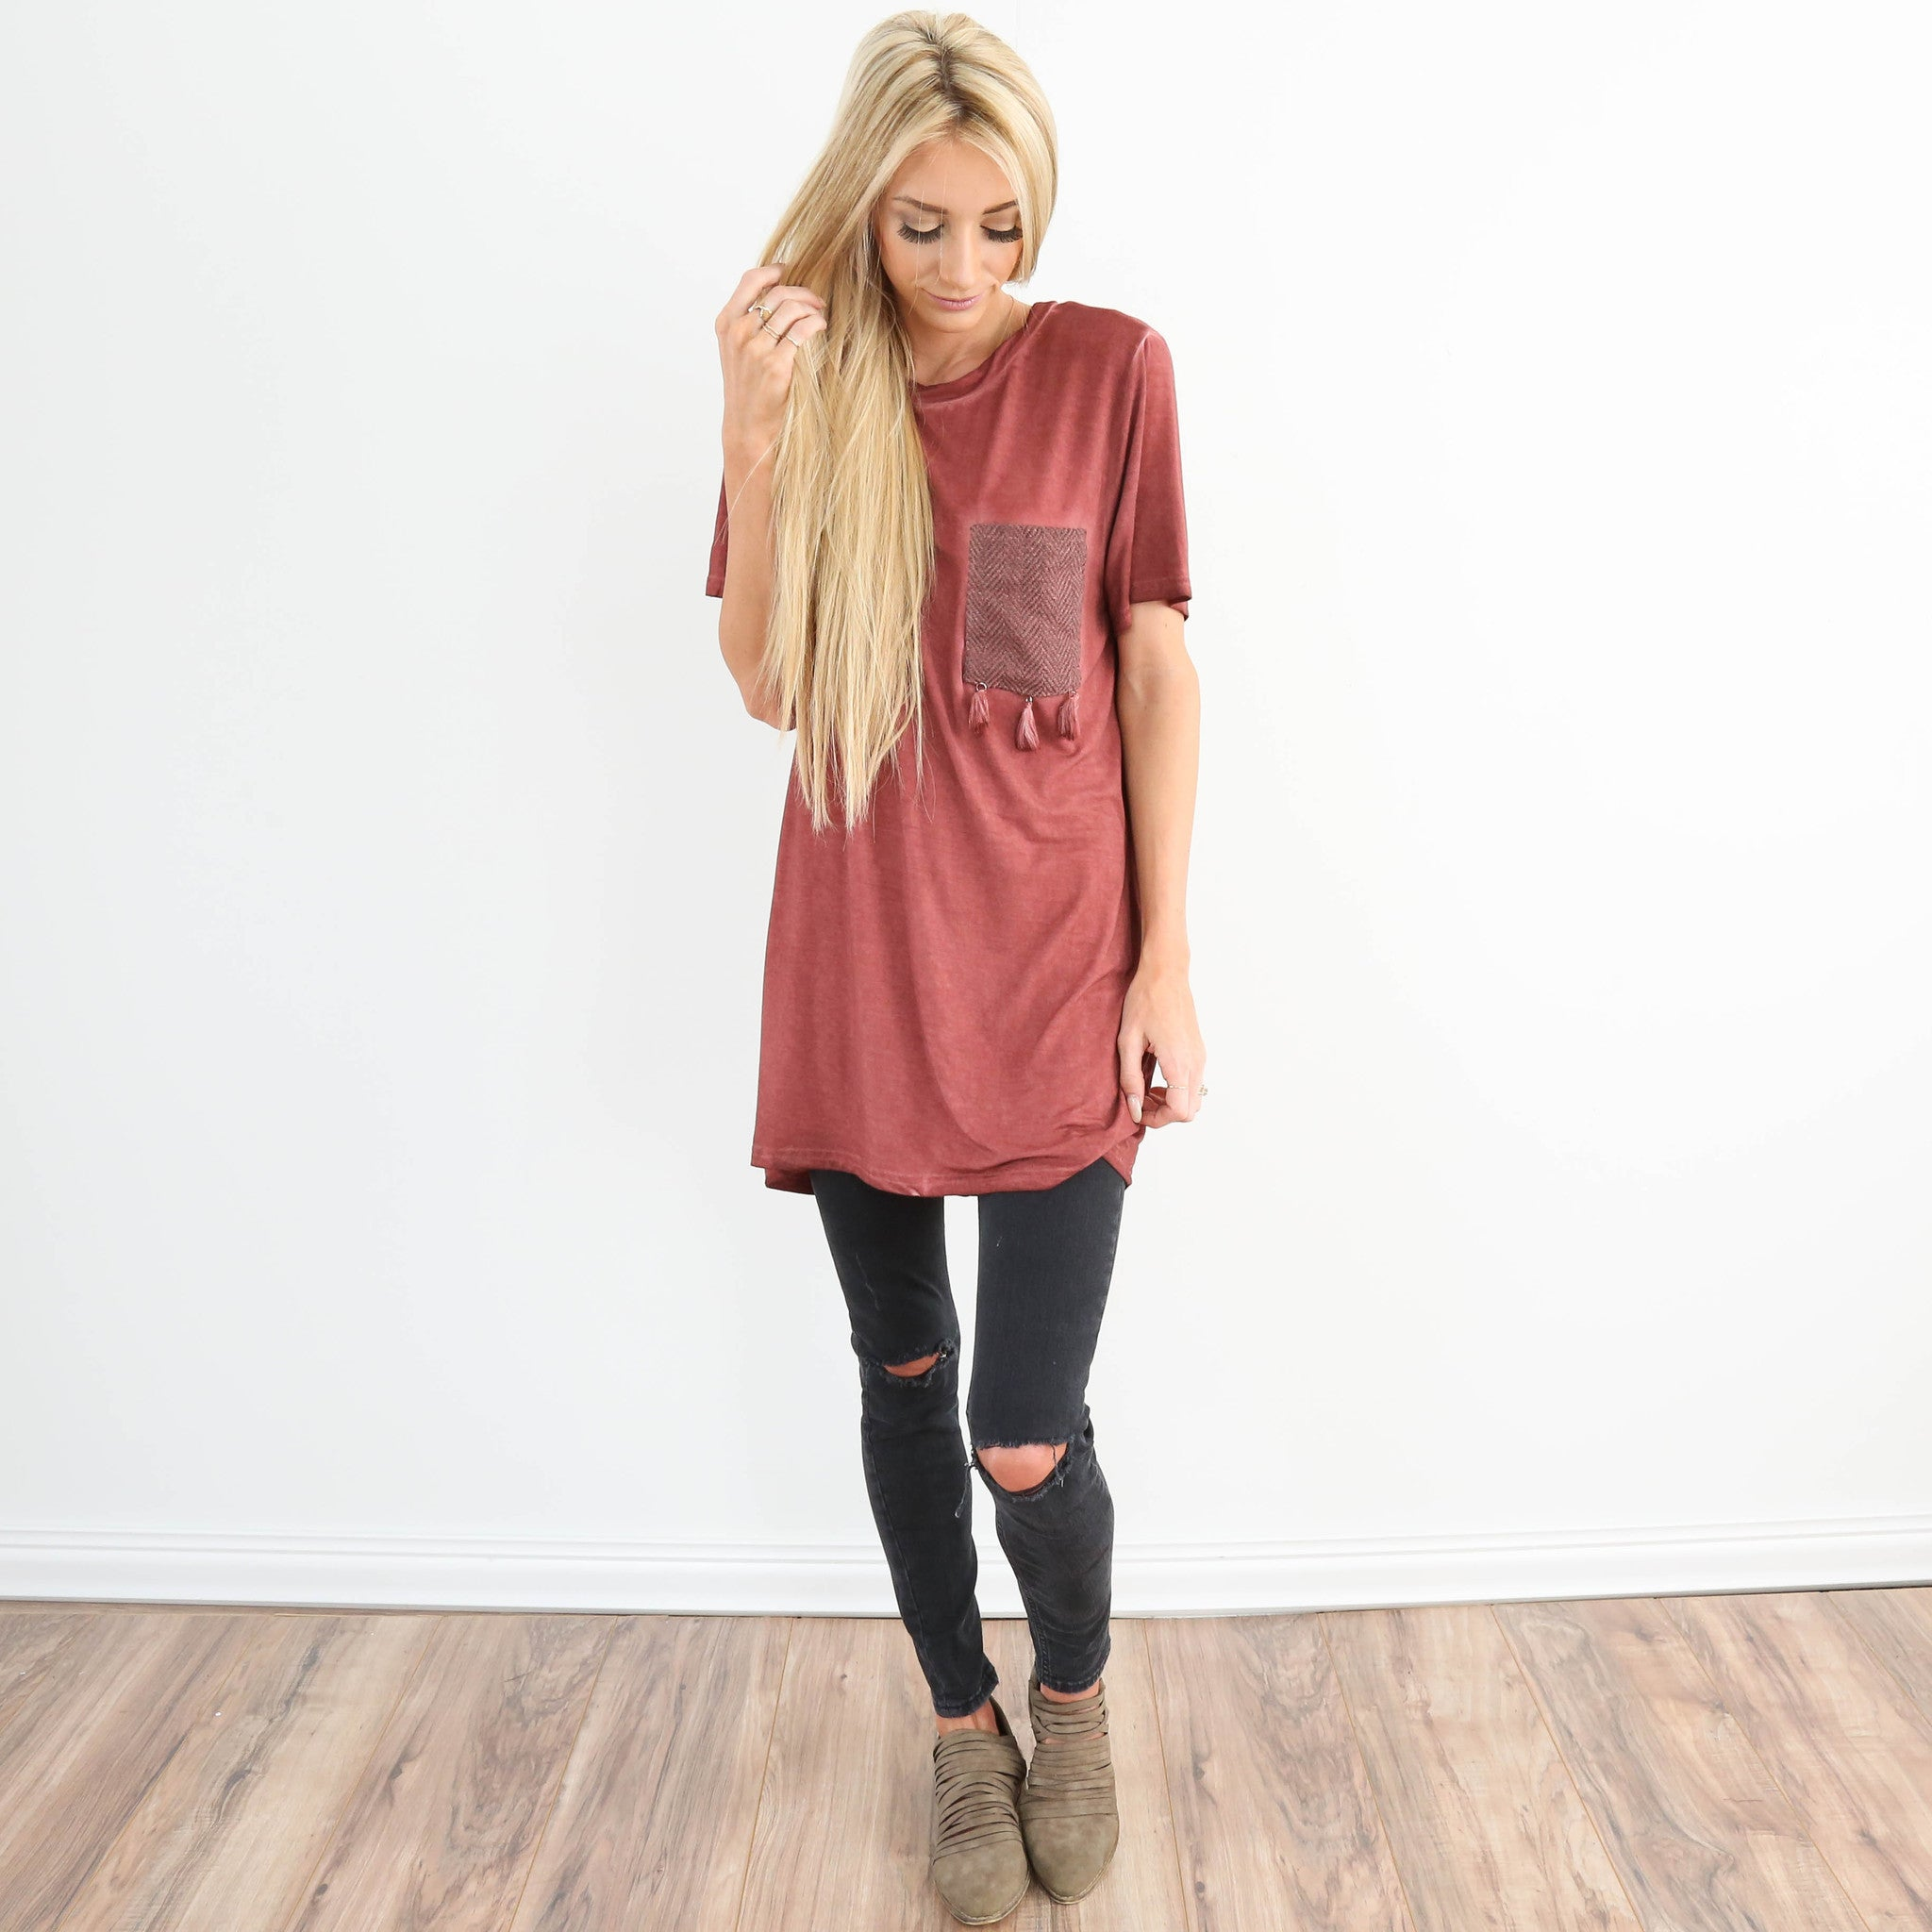 Penny Pocket Tassel Tee in Brick